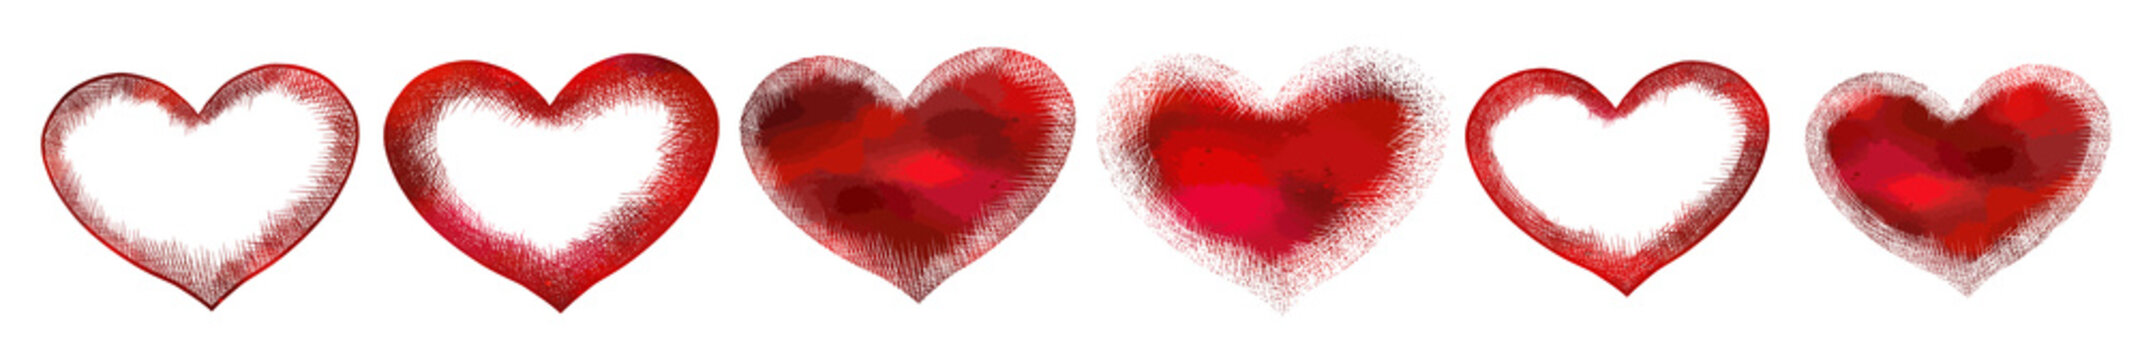 Set of red hearts. Vector illustration. For logo, icons, tattoo. Happy Valentine's Day.